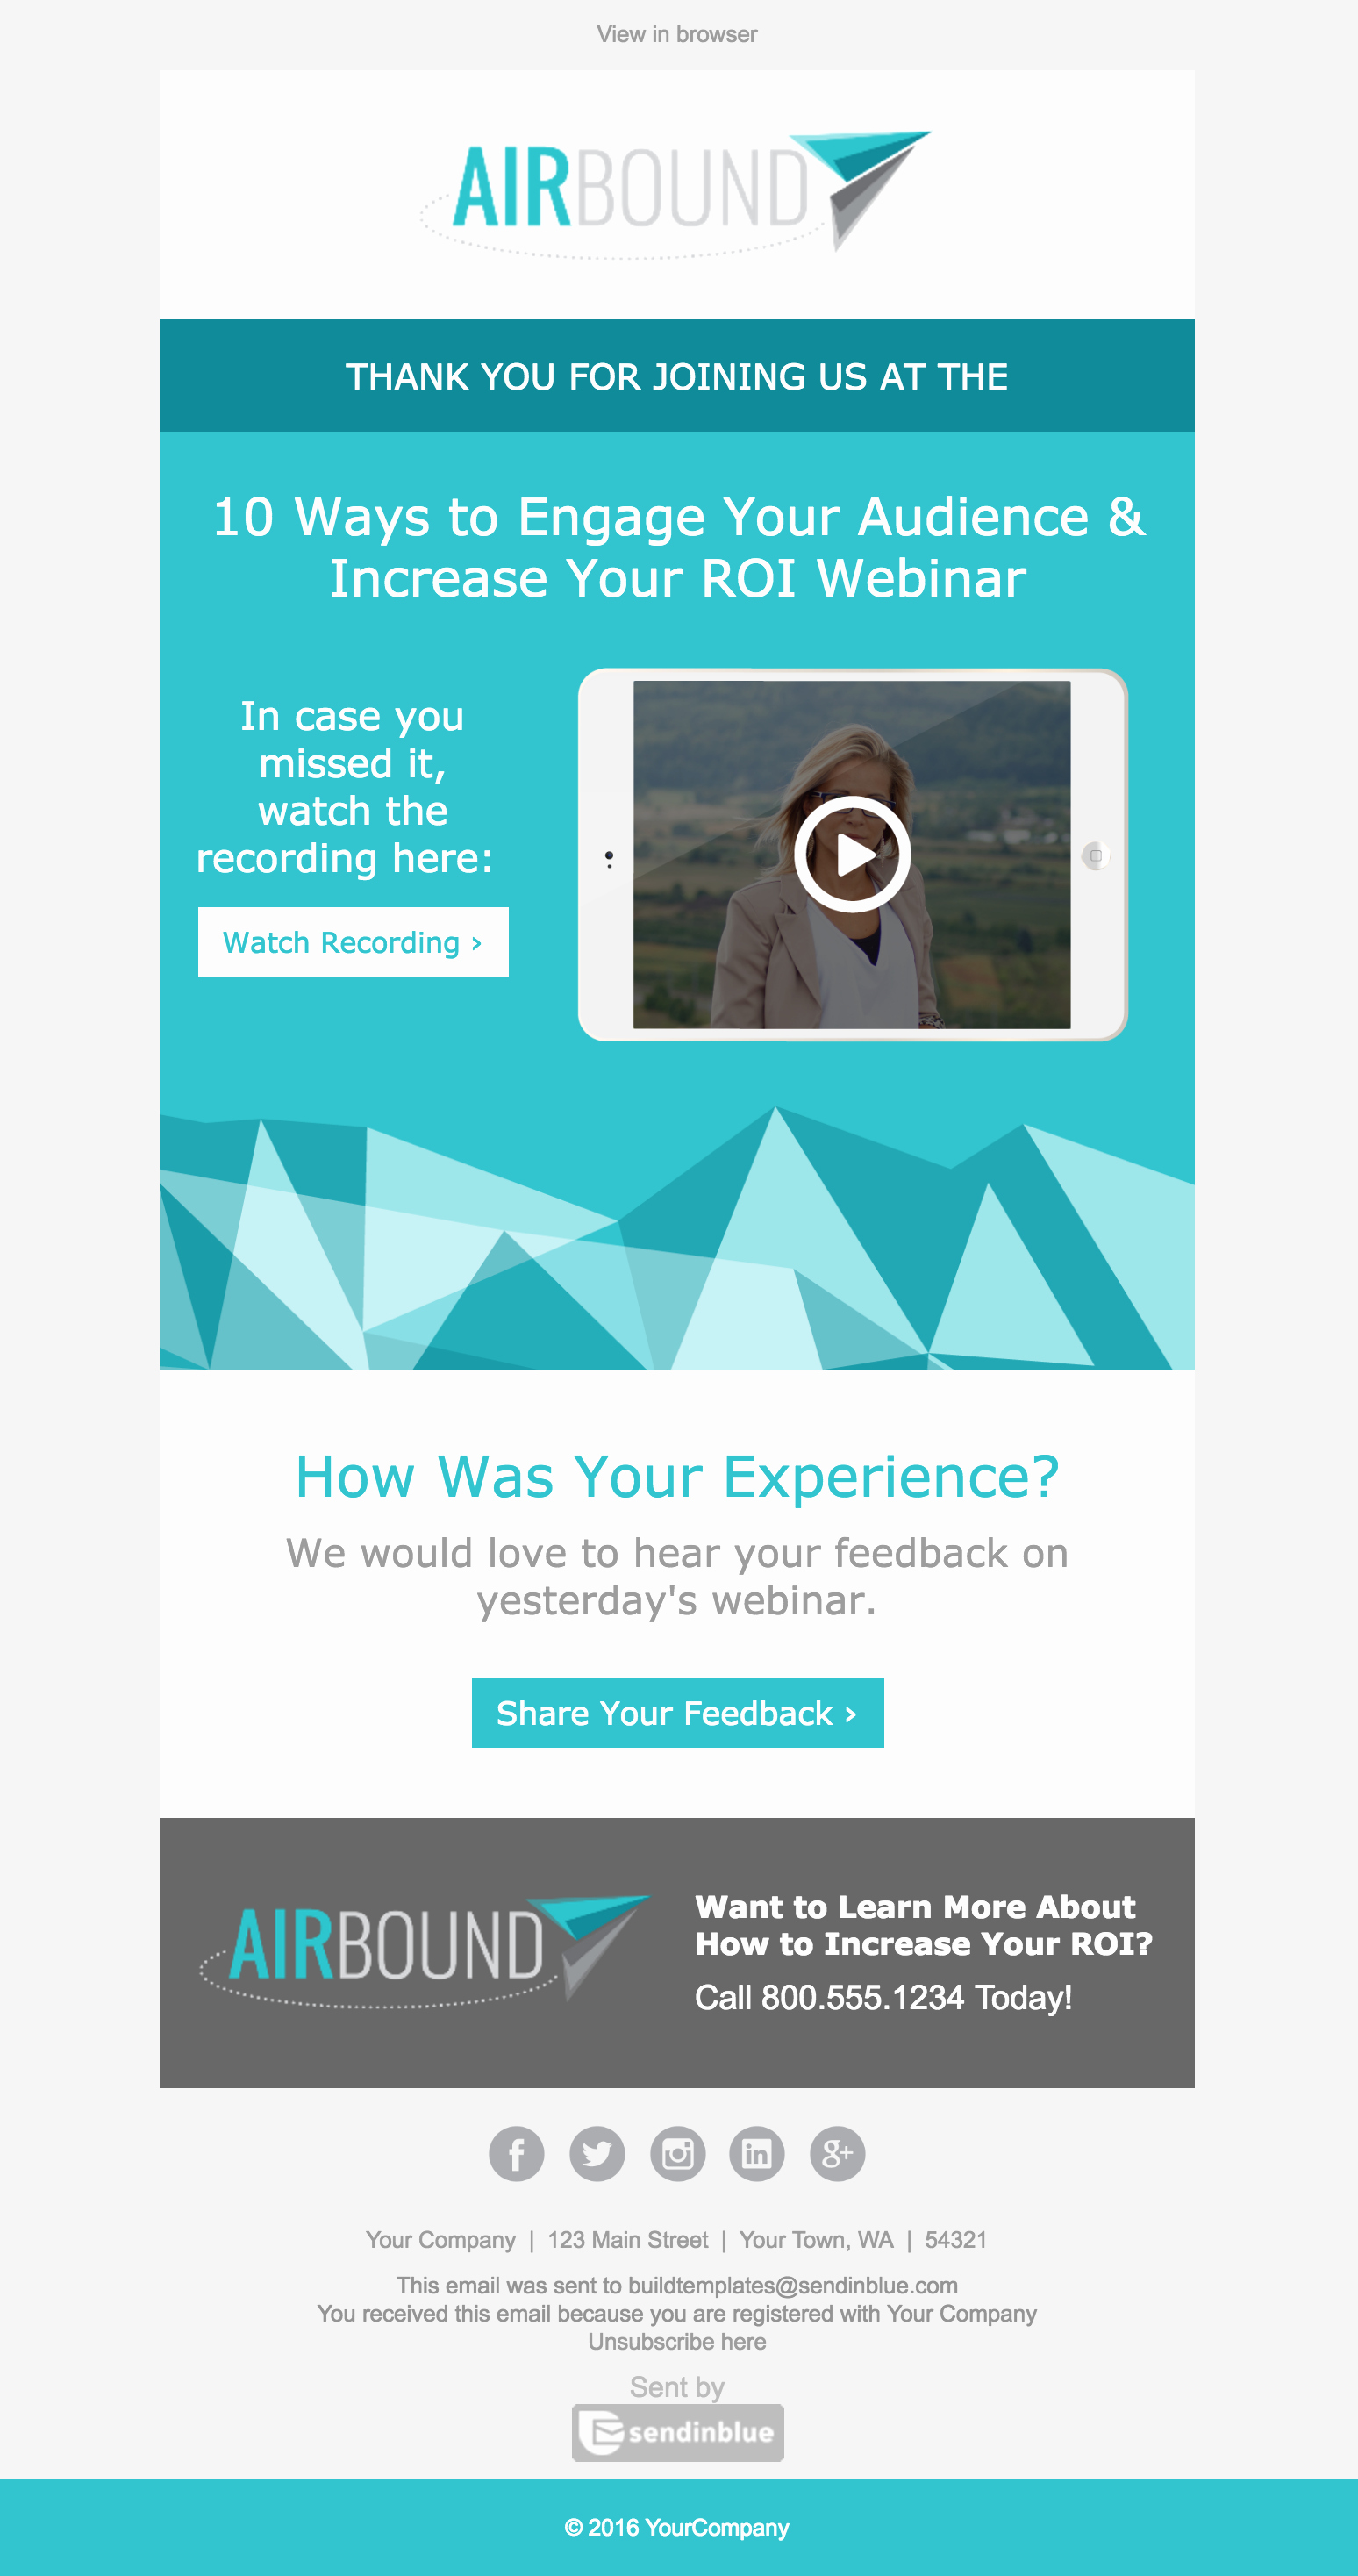 Event Invitation Email Template Best Of top 8 B2b Email Templates for Marketers In 2017